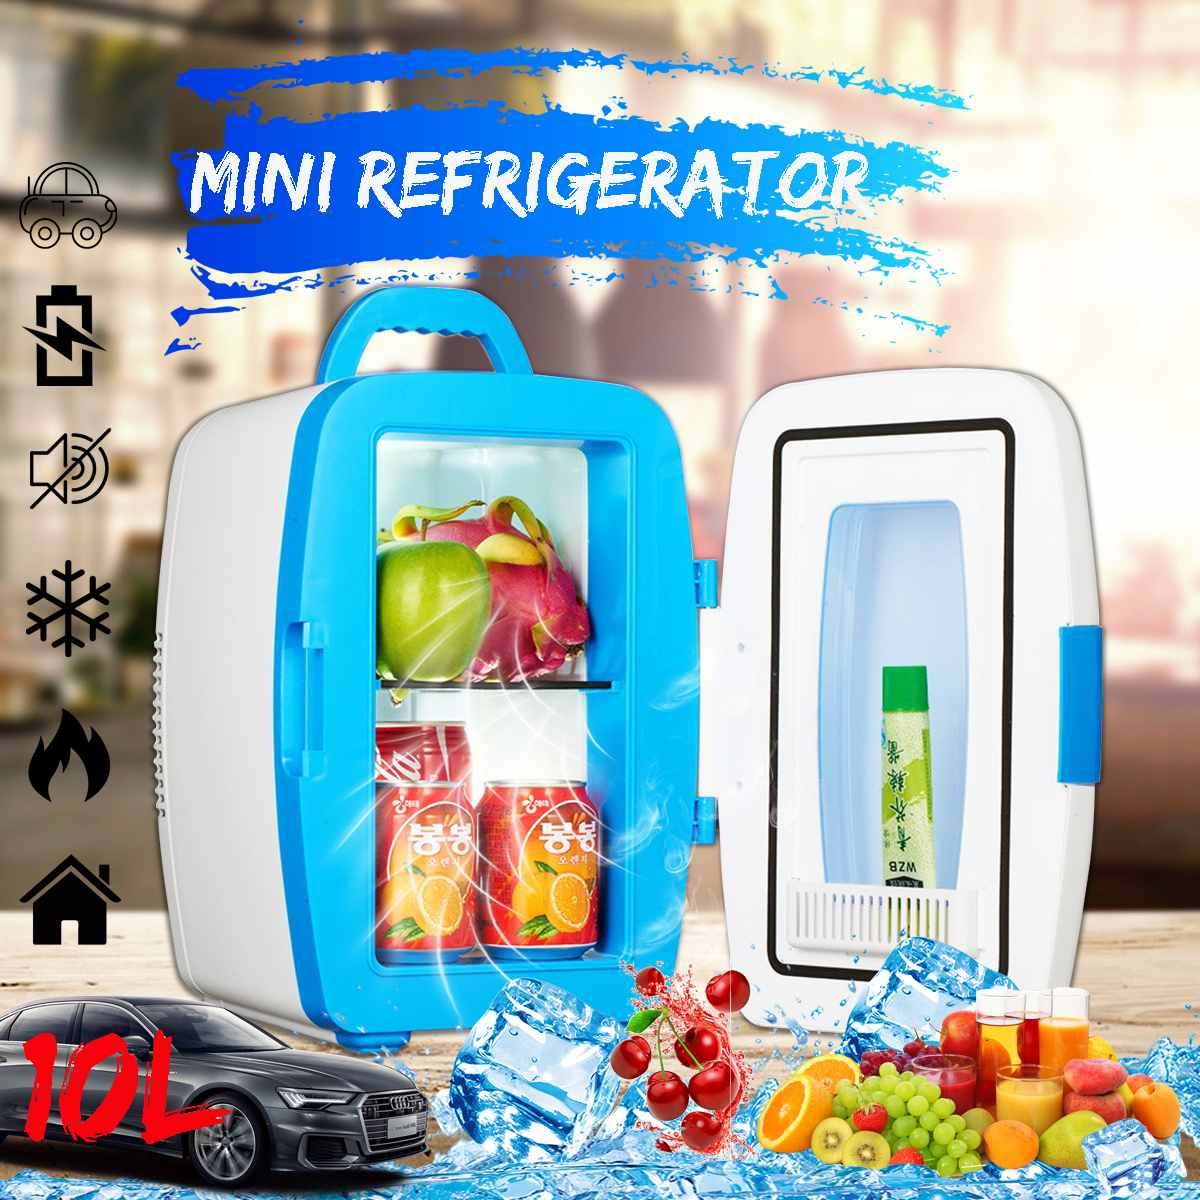 Portable 10L Mini Car Refrigerator Freezer Cooler Warmer Home Car Camping Travel Dual-use AC 220V DC 12V